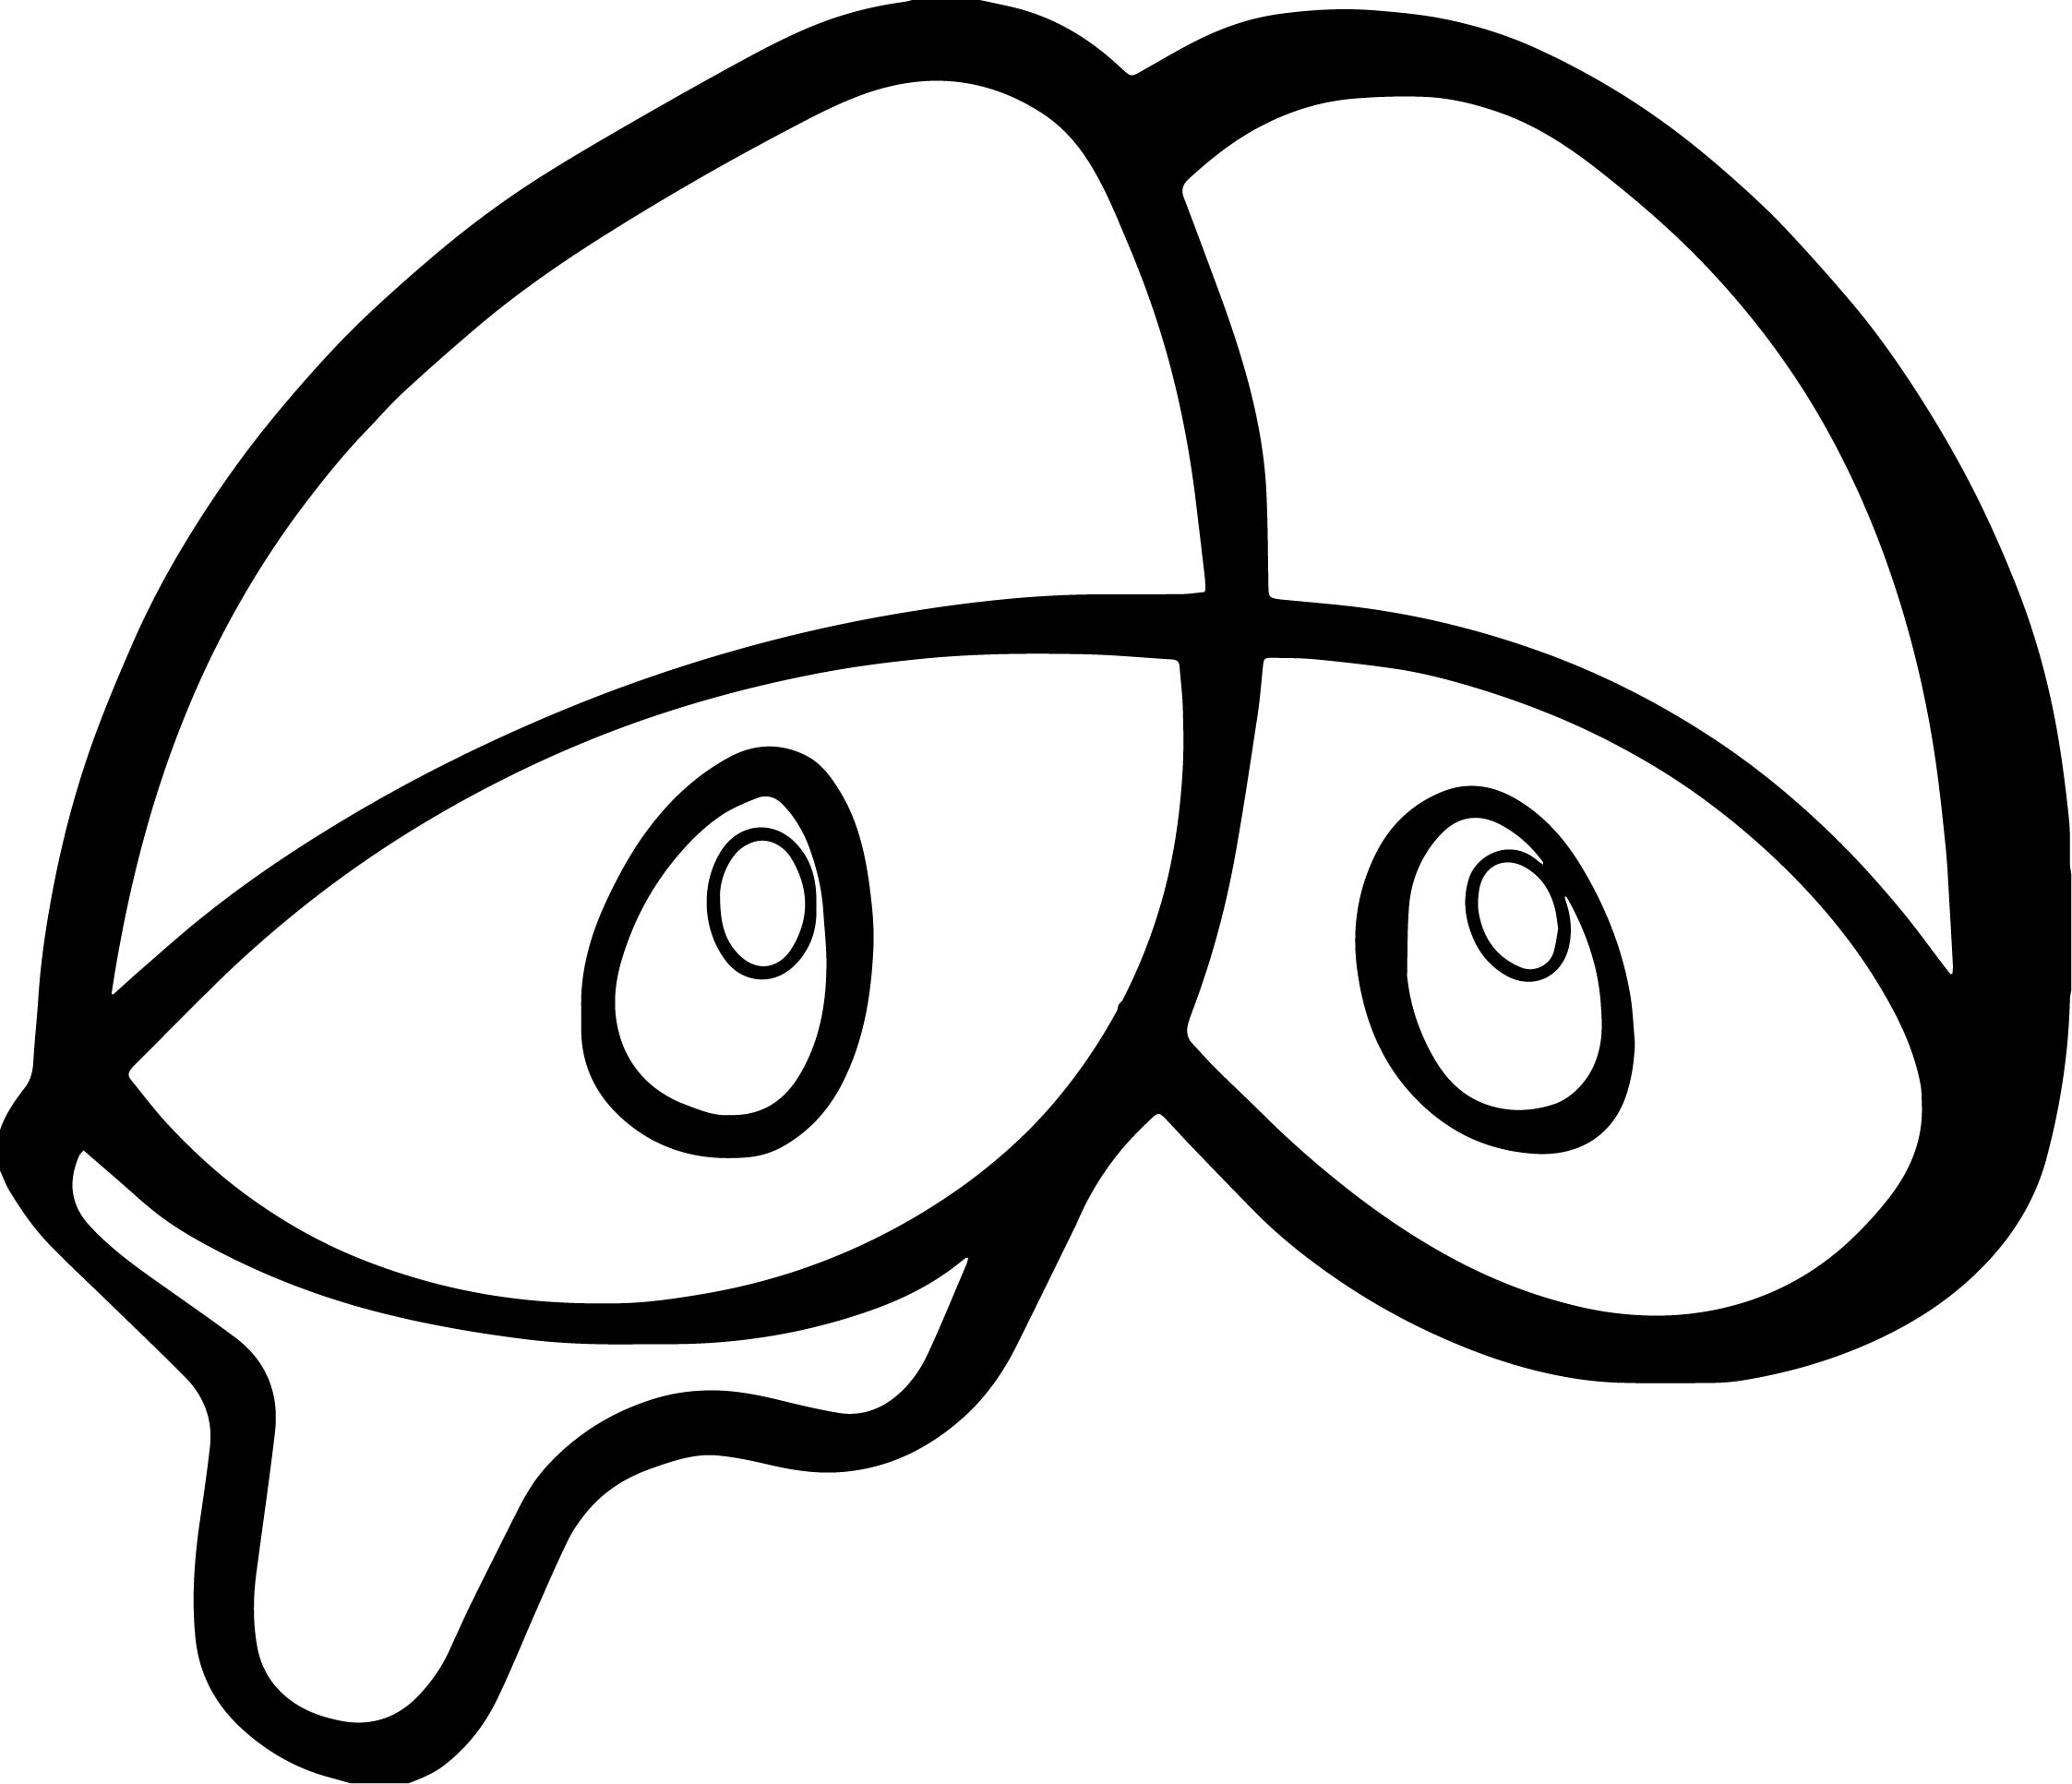 eye coloring page eye coloring pages getcoloringpagescom eye coloring page